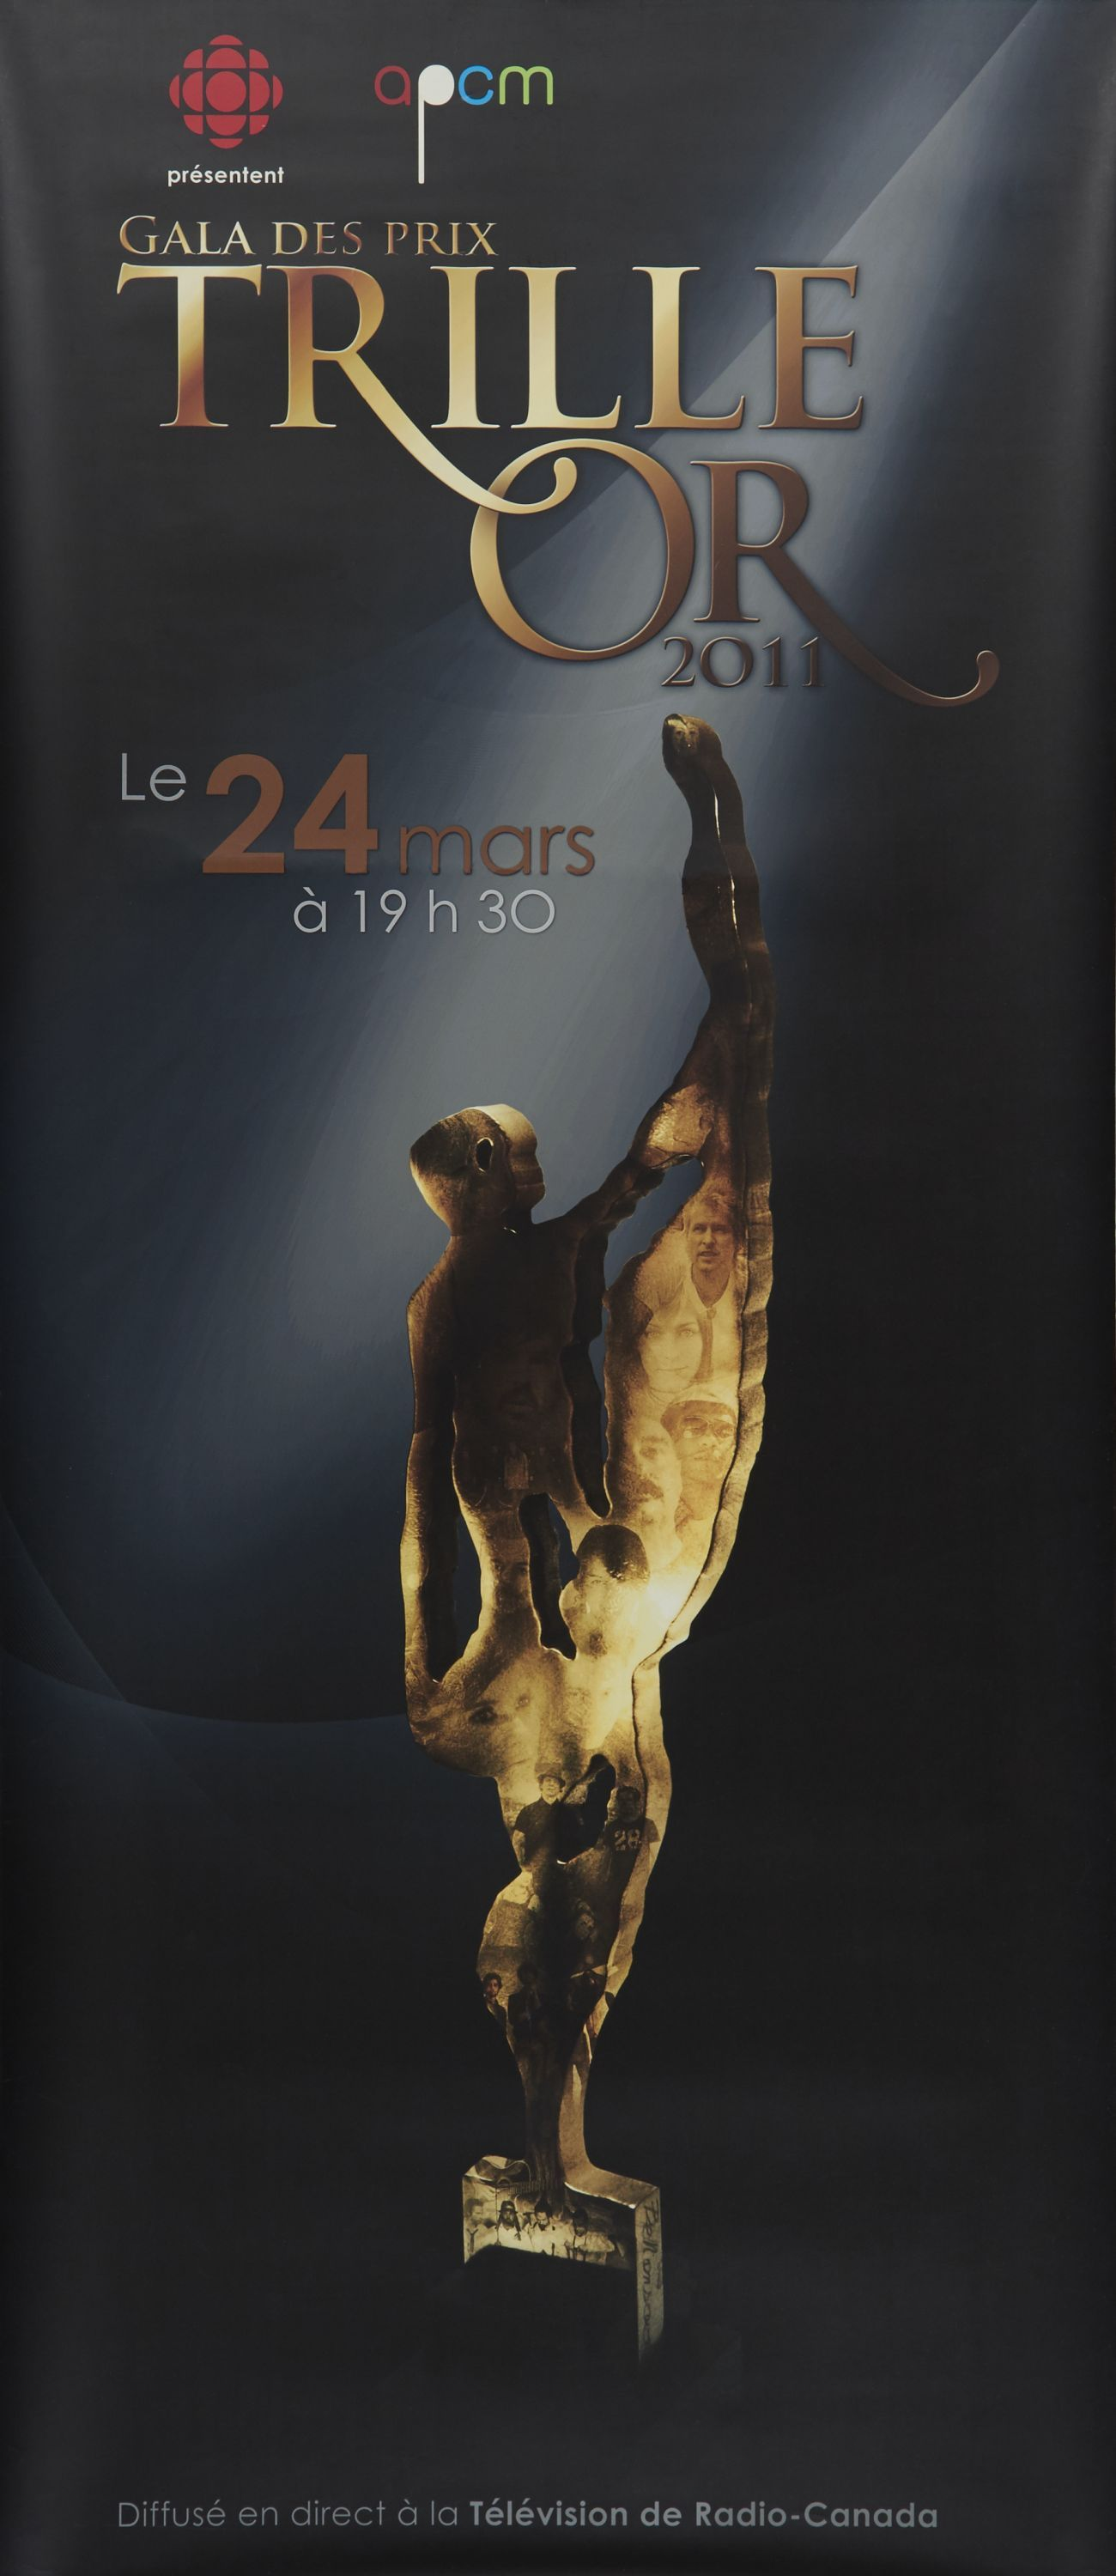 Rectangular poster in French.  On a black background, the drawing of a gold statuette under a projector. At the top of the poster, in gilded characters , the logos of the sponsoring organizations, and the name and date of the event. At the bottom, information about the televised broadcast.